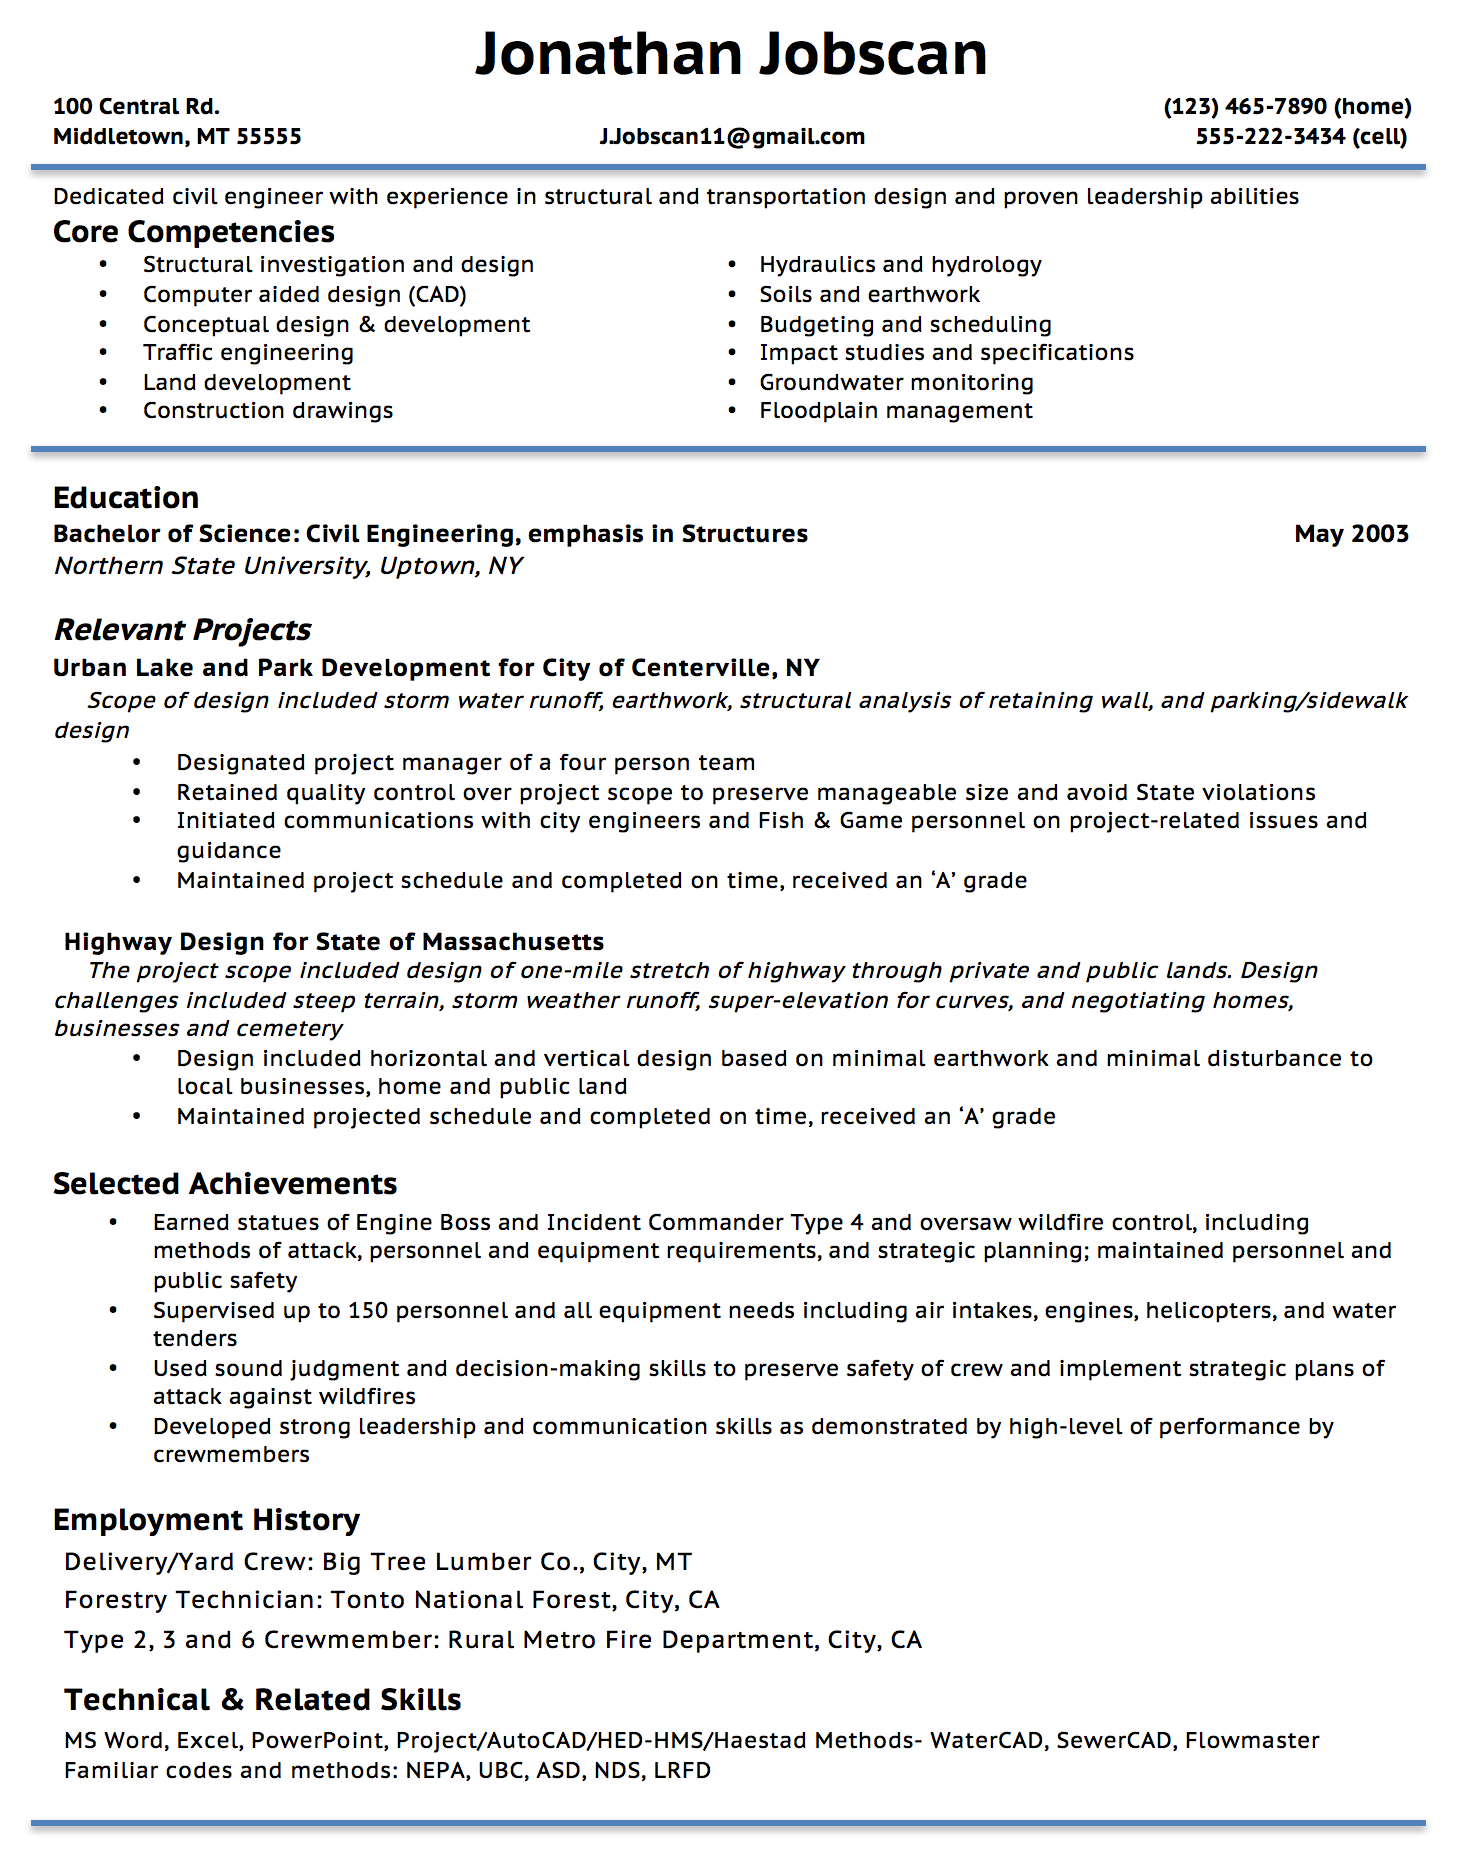 Opposenewapstandardsus  Stunning Resume Writing Guide  Jobscan With Interesting Example Of A Functional Resume Format With Cute Emailing Resume Also Resume Job In Addition Resume From Linkedin And Resumes Definition As Well As Qa Tester Resume Additionally Skills And Abilities On A Resume From Jobscanco With Opposenewapstandardsus  Interesting Resume Writing Guide  Jobscan With Cute Example Of A Functional Resume Format And Stunning Emailing Resume Also Resume Job In Addition Resume From Linkedin From Jobscanco